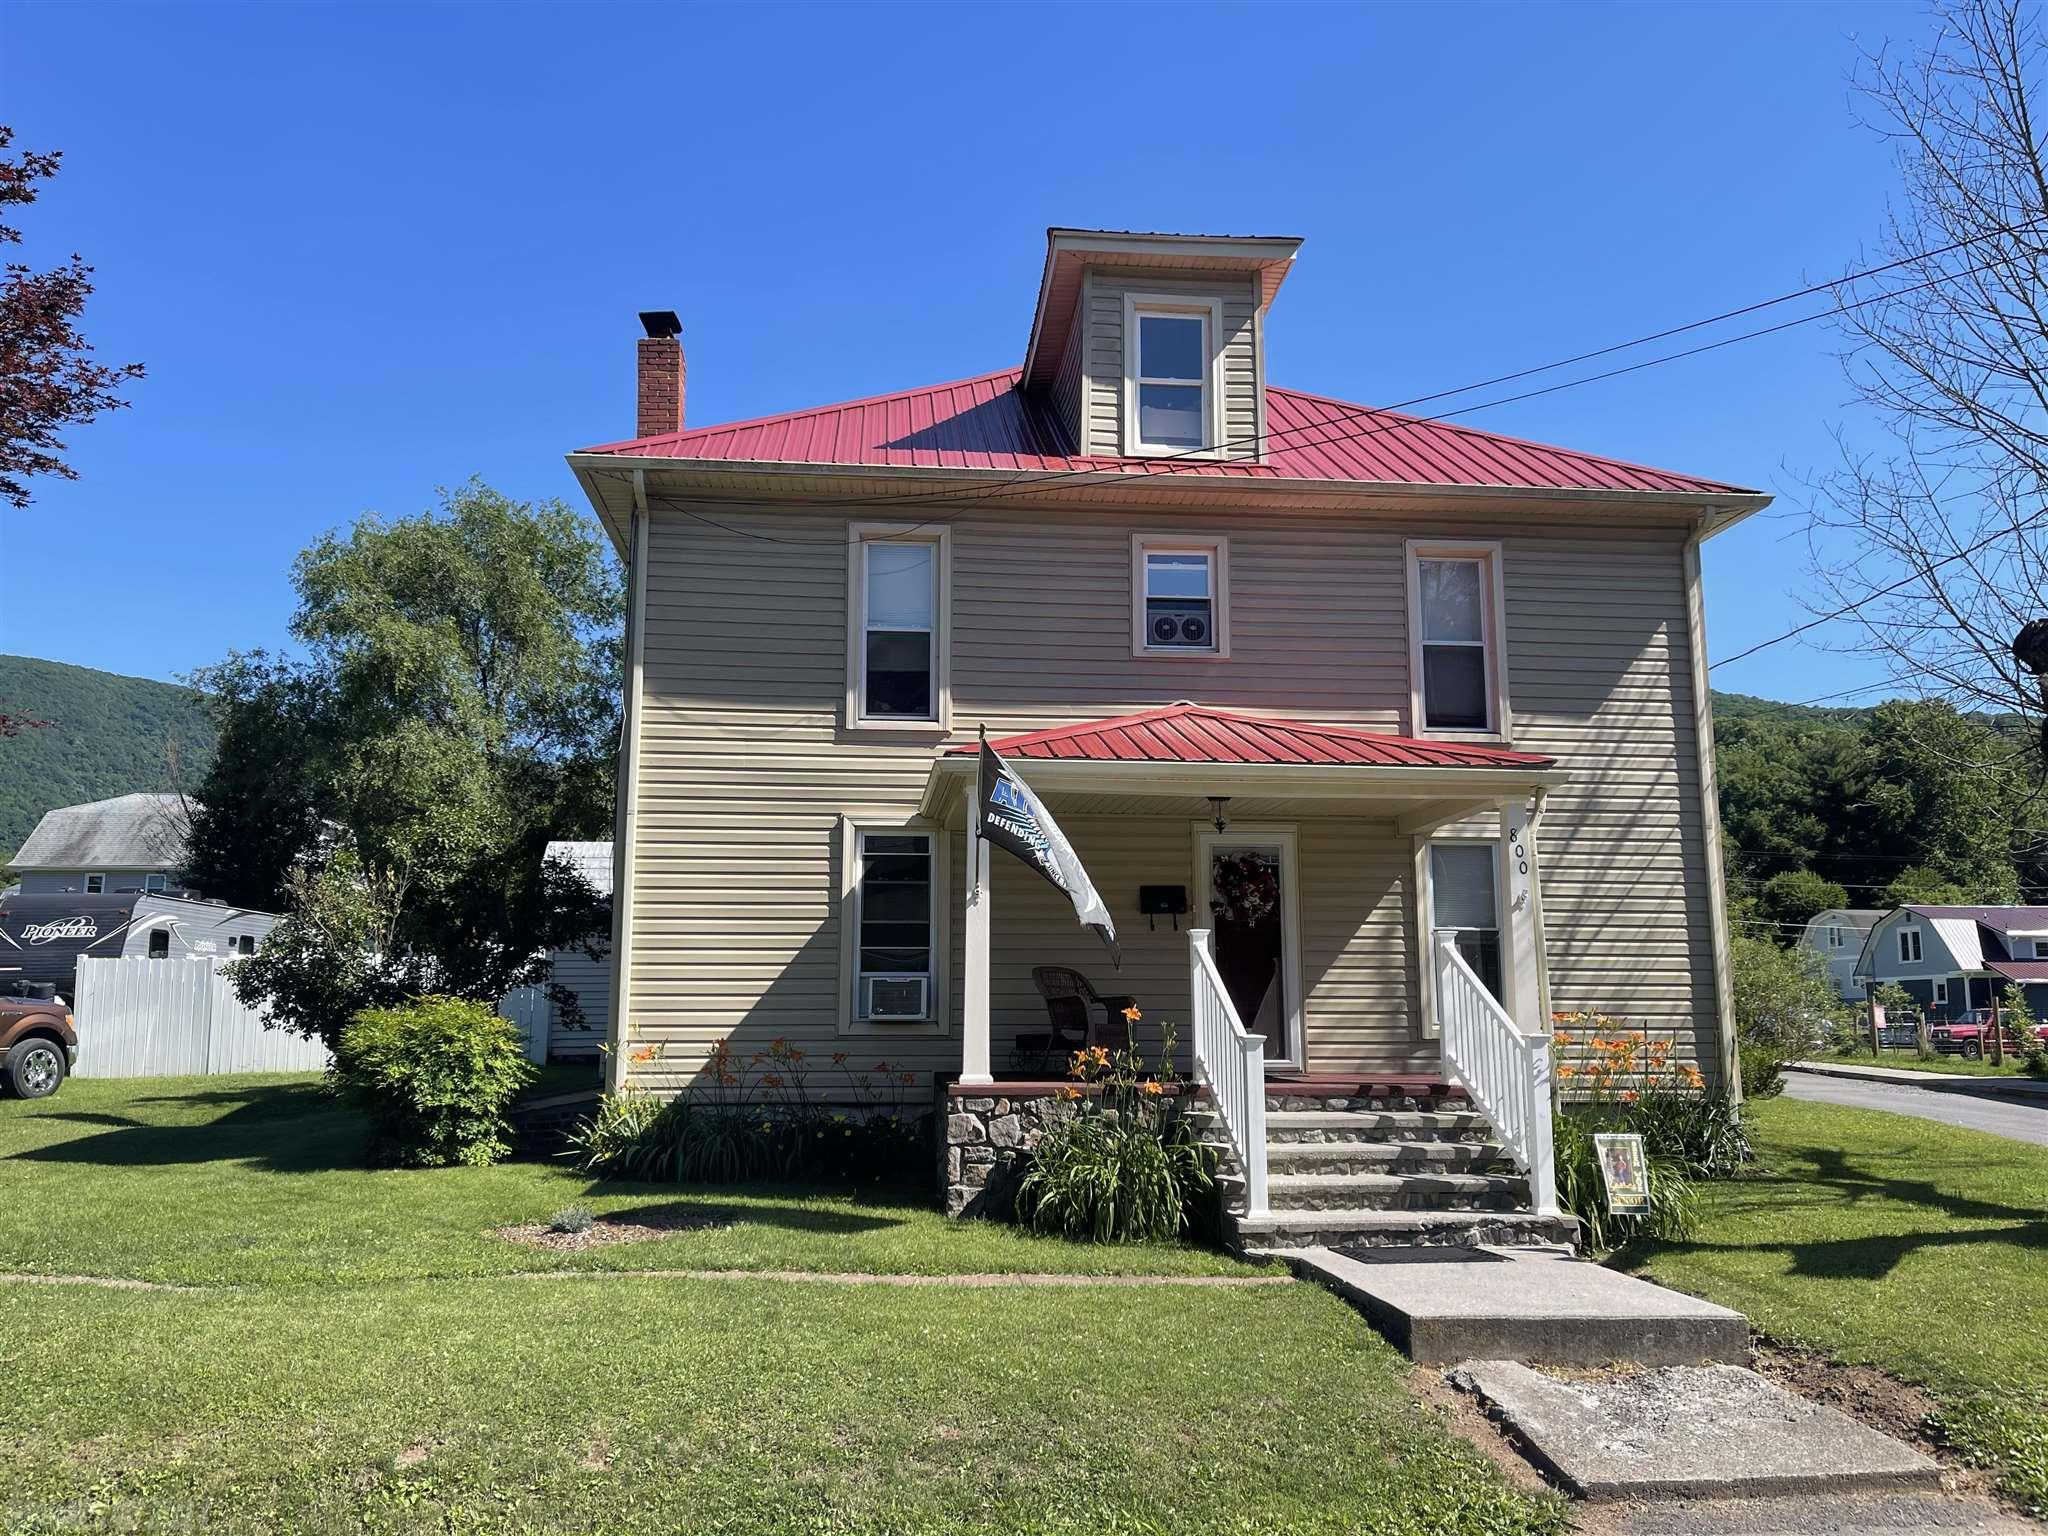 Lovely older home with lots of updates! Hardwood floors, spacious rooms, 2 full baths, 16 x 32 in ground pool, large open deck, covered porch, 2 outbuildings, 2 car garage, located on 2 level lots, Lots of privacy while living in town near all the local amenities. listing agent is owner